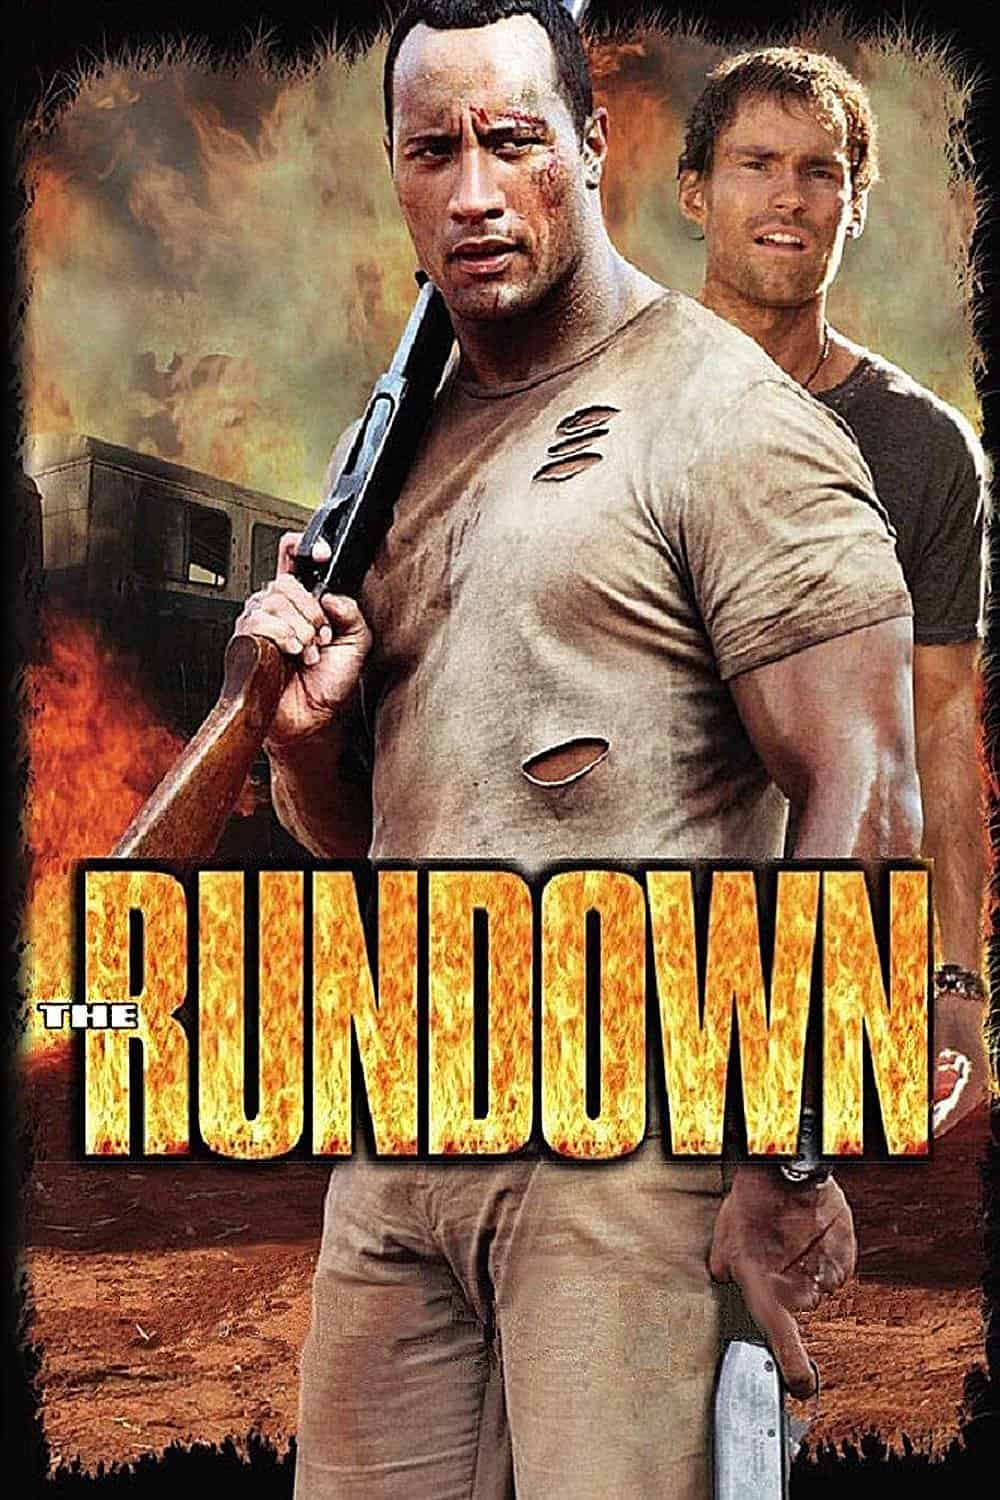 The Rundown, 2003